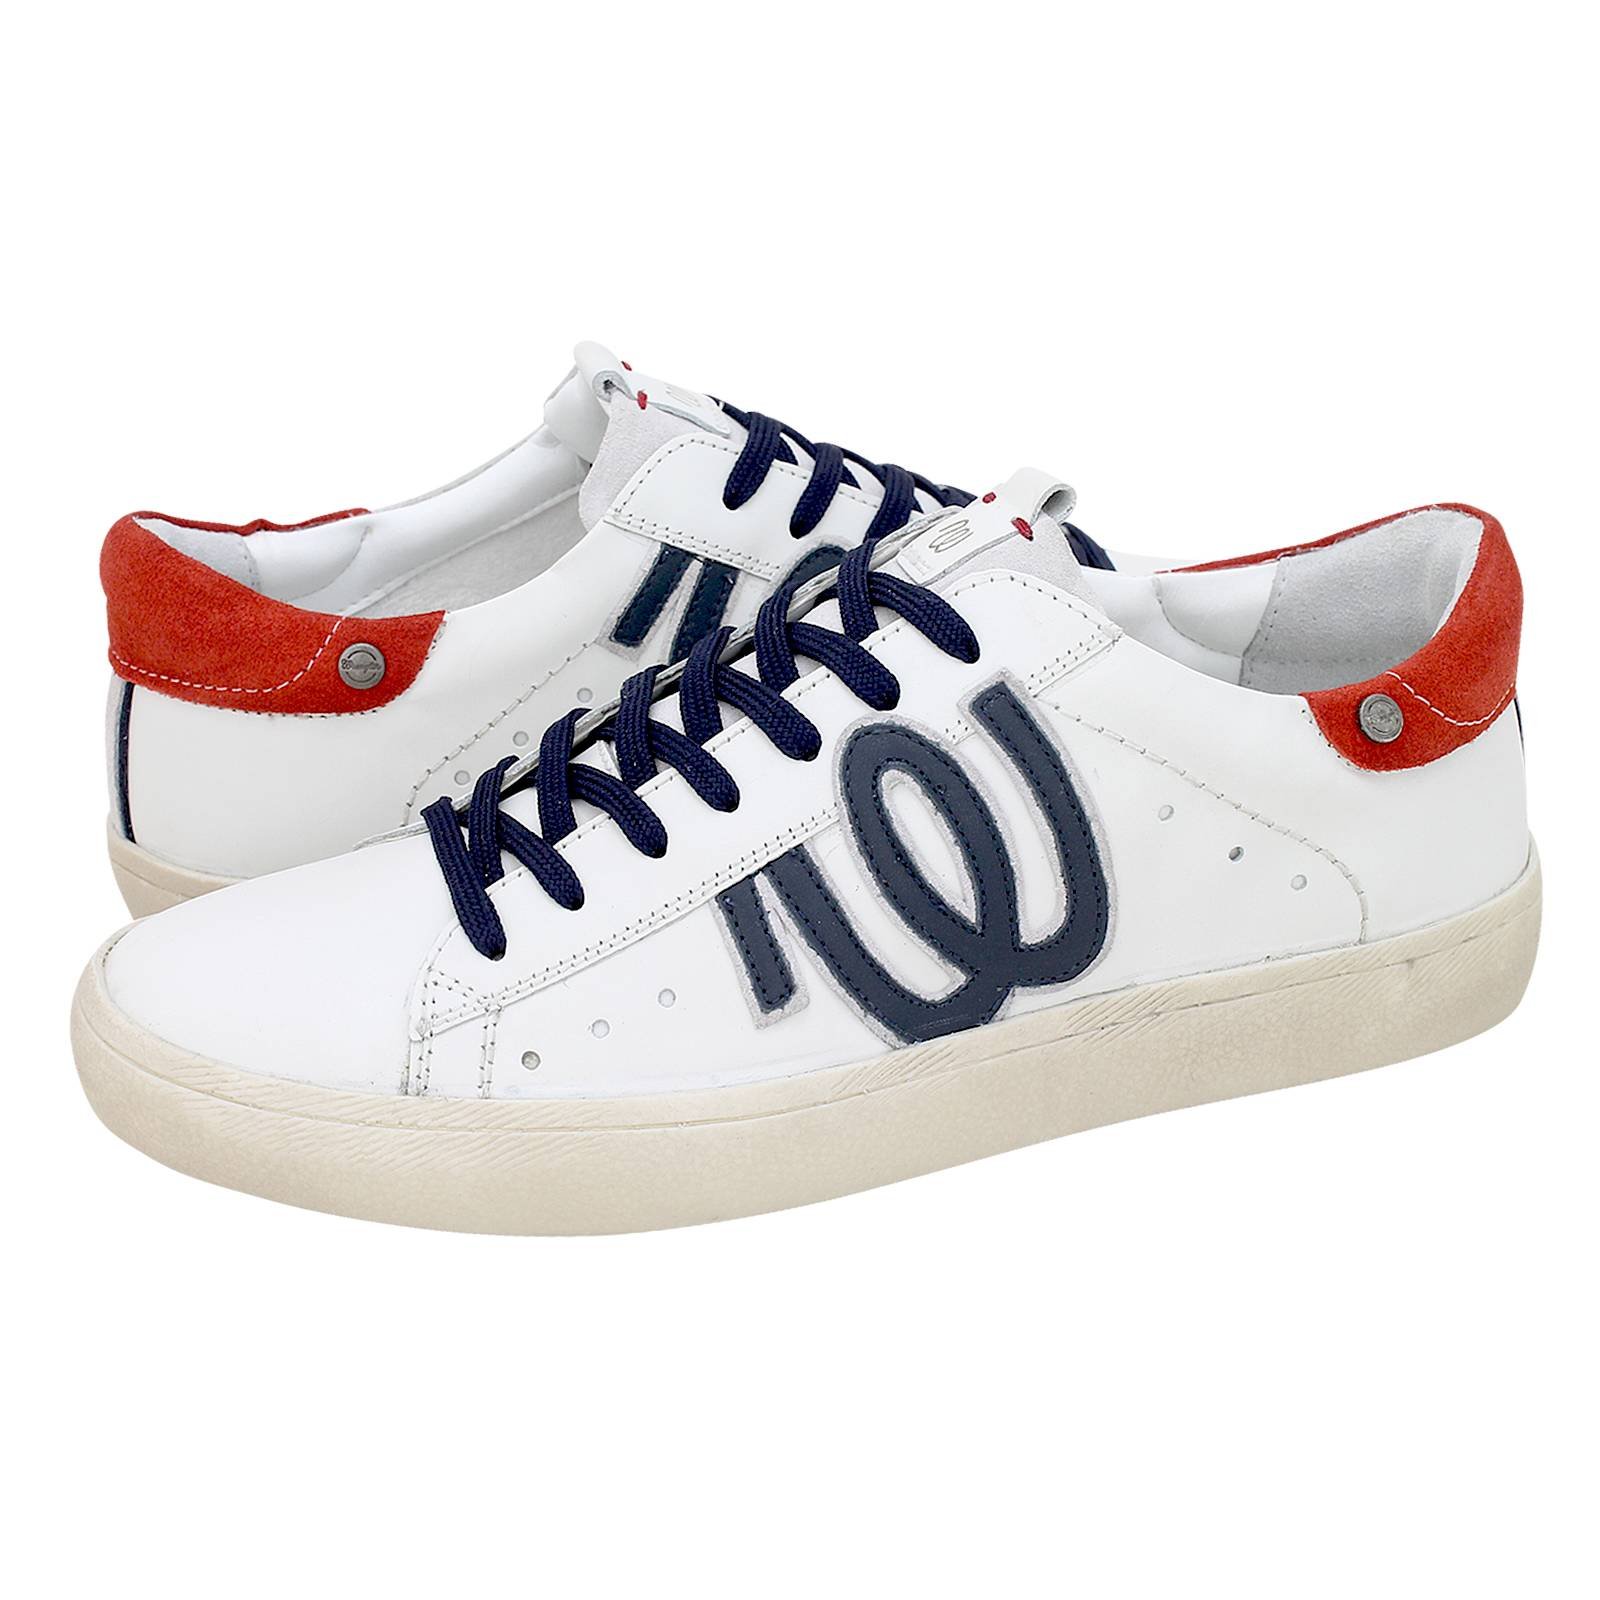 Wrangler Clever Wrg casual shoes